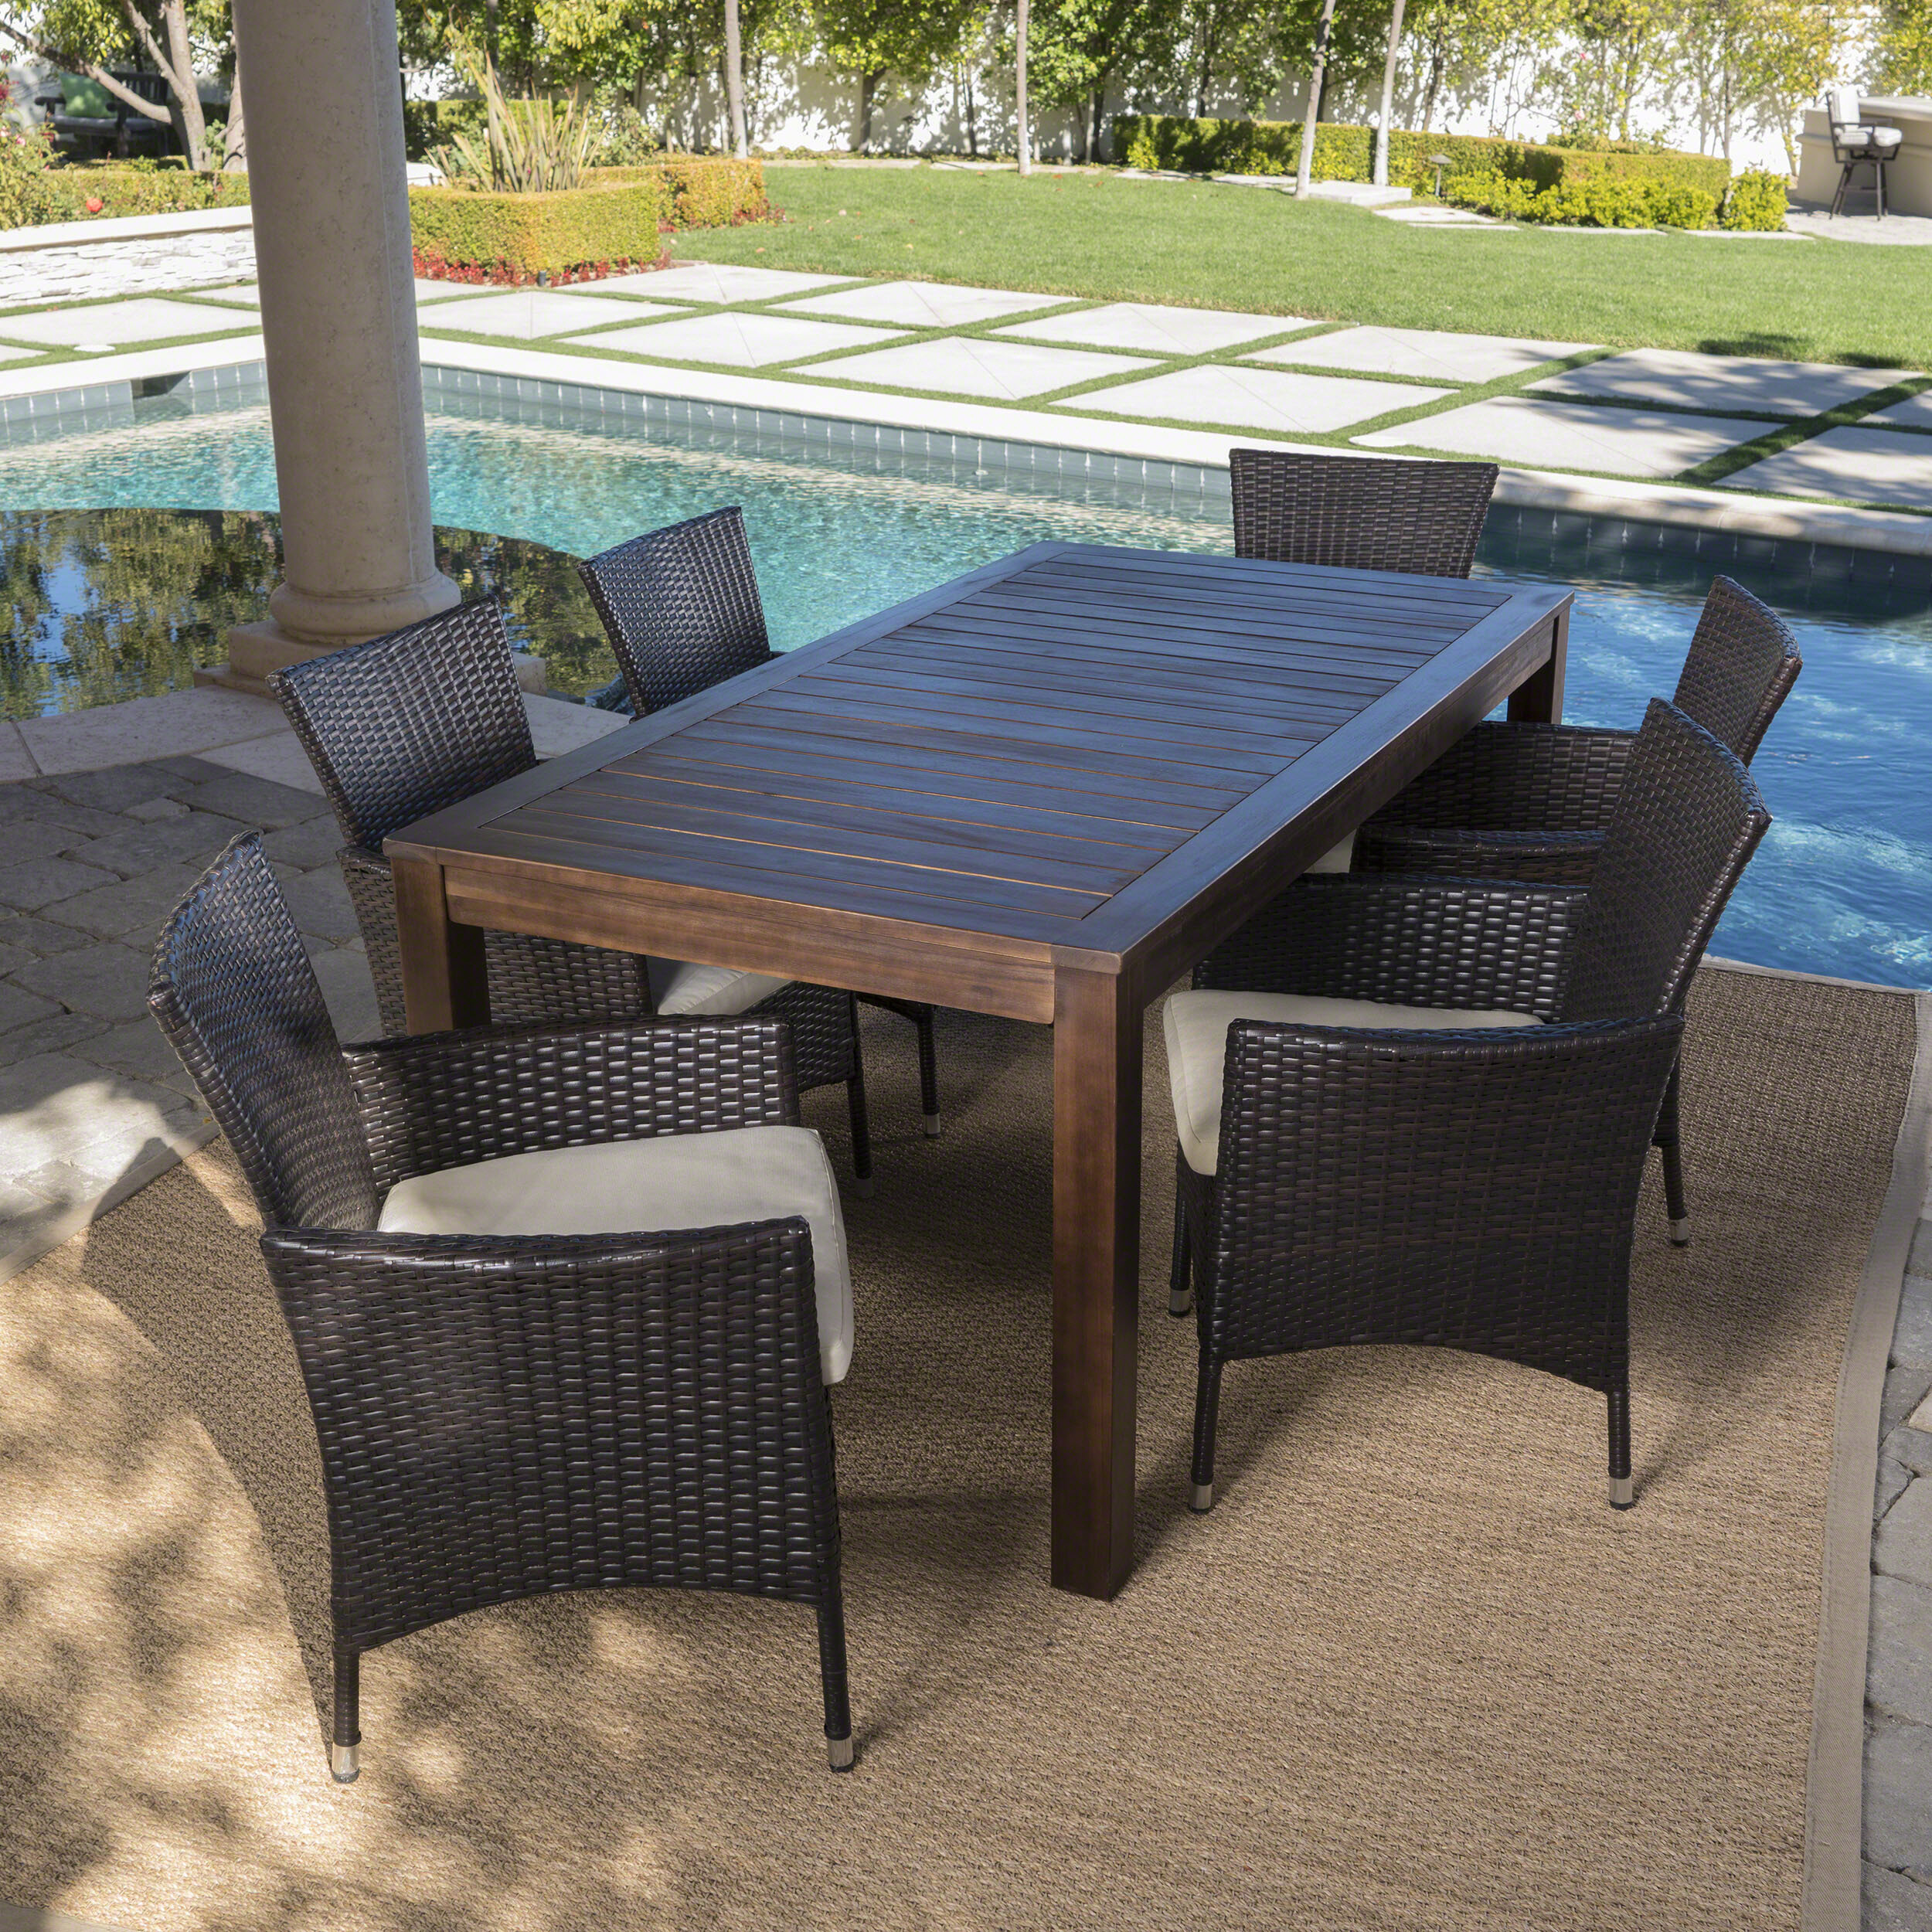 Appel Outdoor 14 Piece Dining Set with Cushions